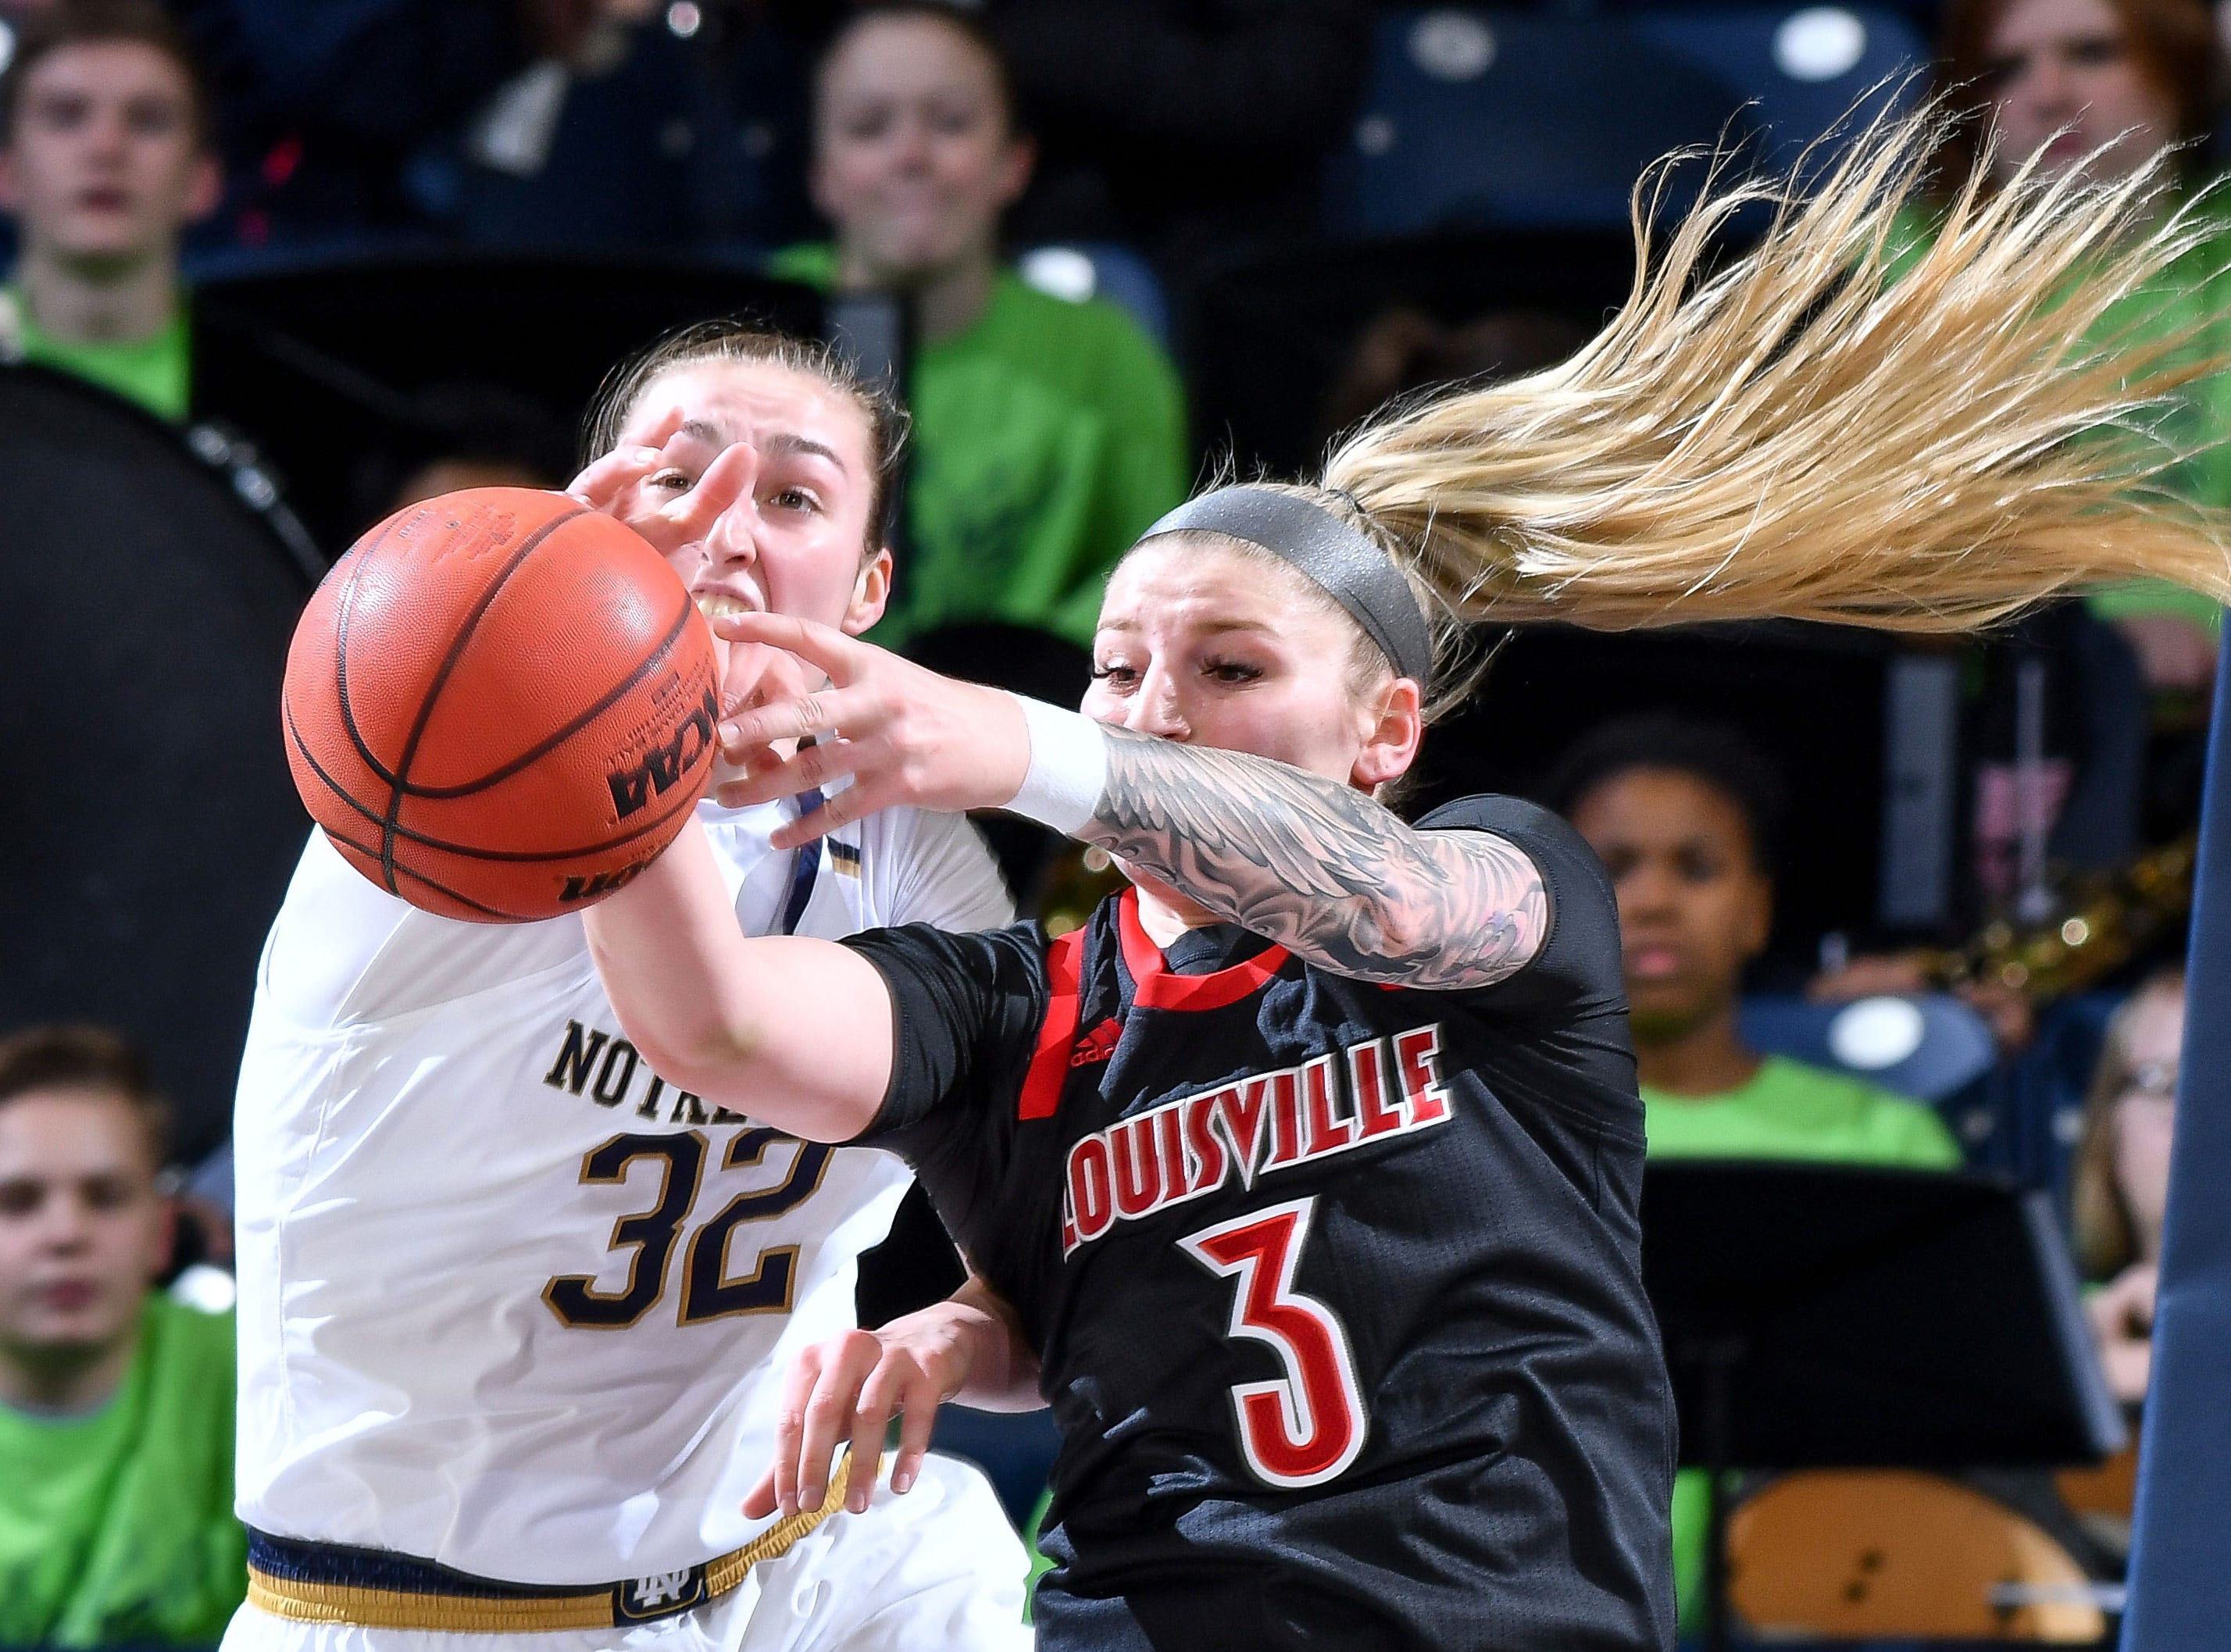 Jan 10, 2019; South Bend, IN, USA; Notre Dame Fighting Irish forward Jessica Shepard (32) and Louisville Cardinals forward Sam Fuehring (3) reach for a rebound in the first half at the Purcell Pavilion.